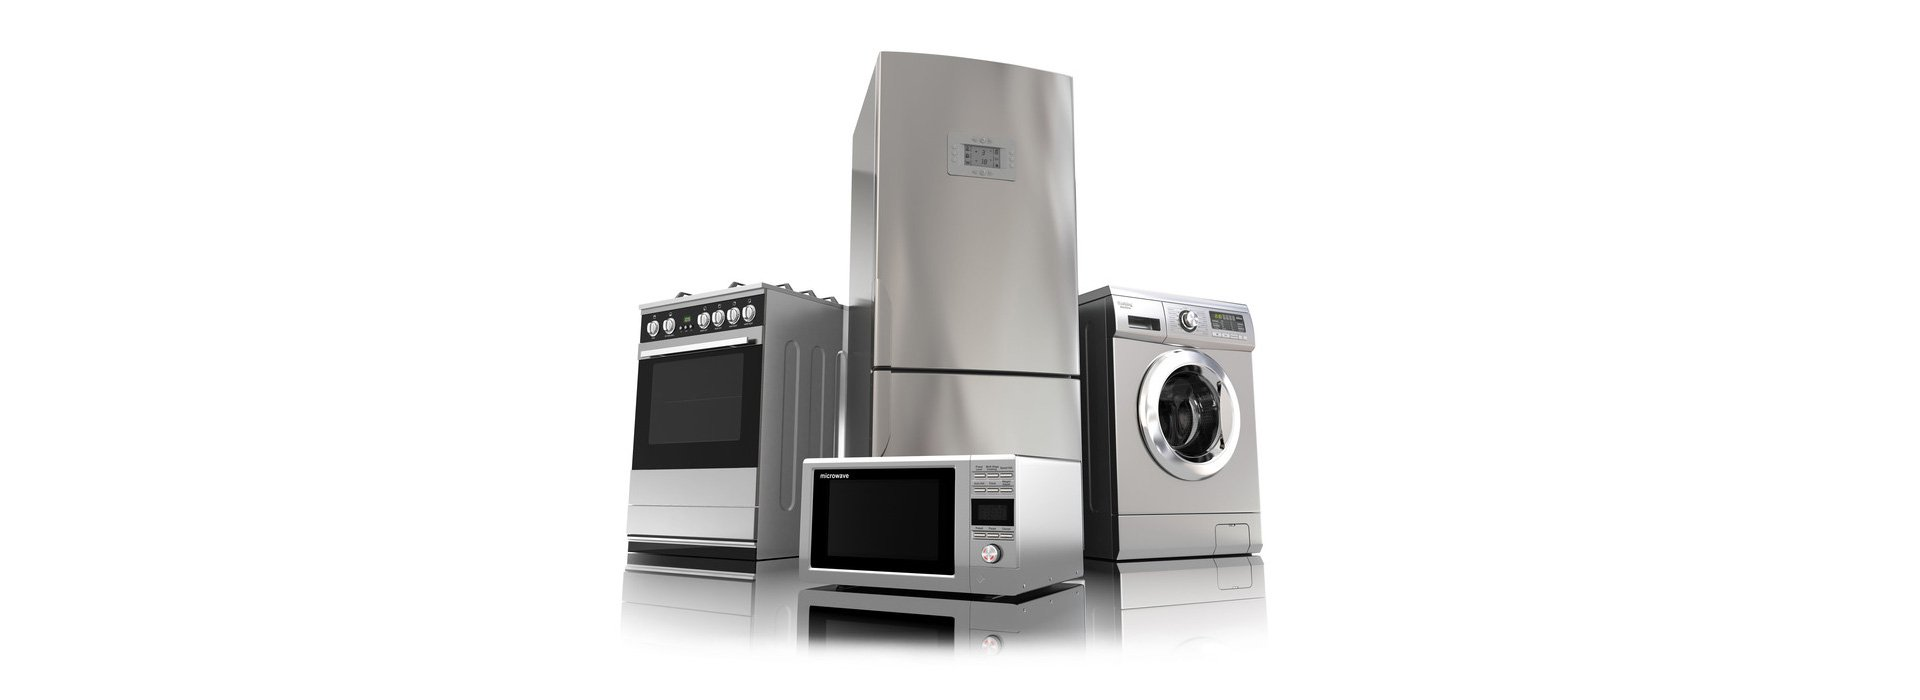 Jall Appliance Repair Appliance Repair Boston Ma